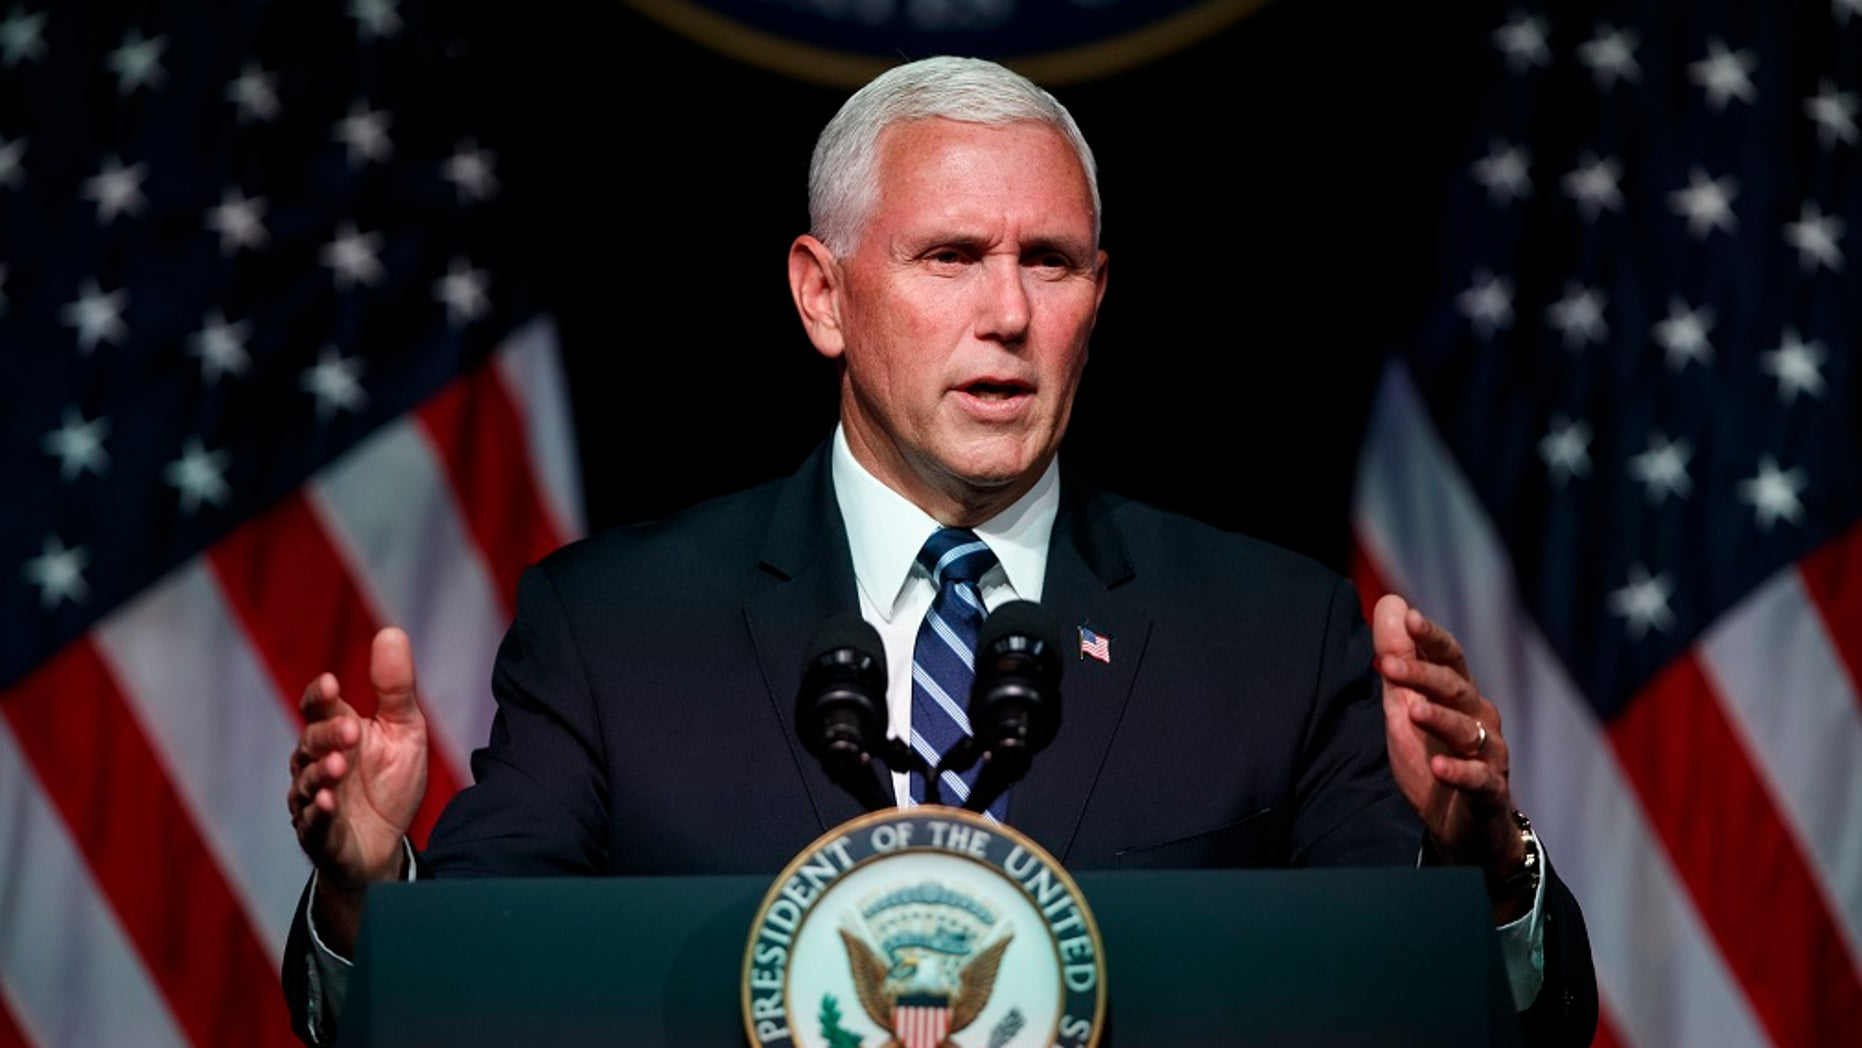 File photo: Vice President Mike Pence attended a rally in Grand Rapids, Michigan, on Wednesday, August 8, 2018.